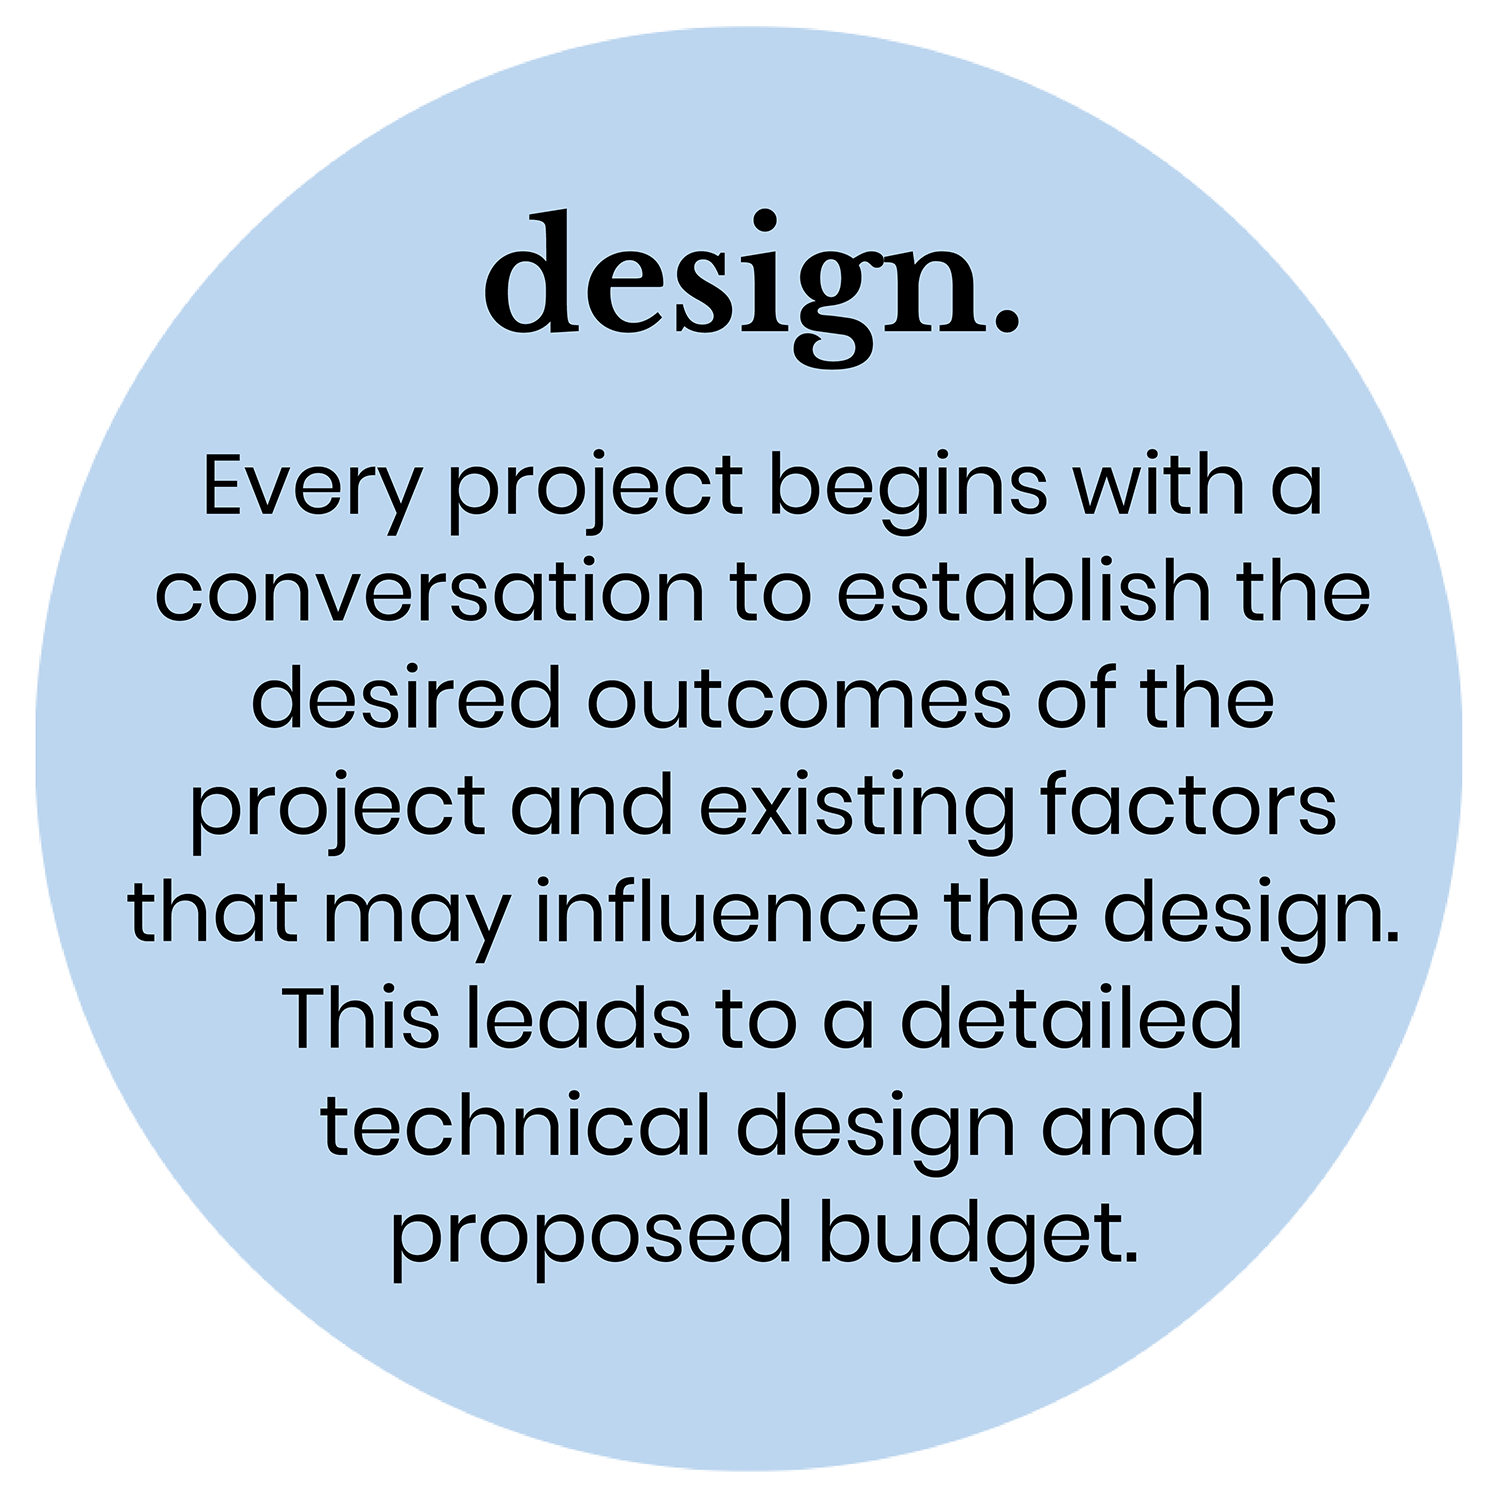 Design Process.Every project begins with a conversation to establish the desired outcomes of the project and existing factors that may influence the design. This leads to a detailed technical design and proposed budget.